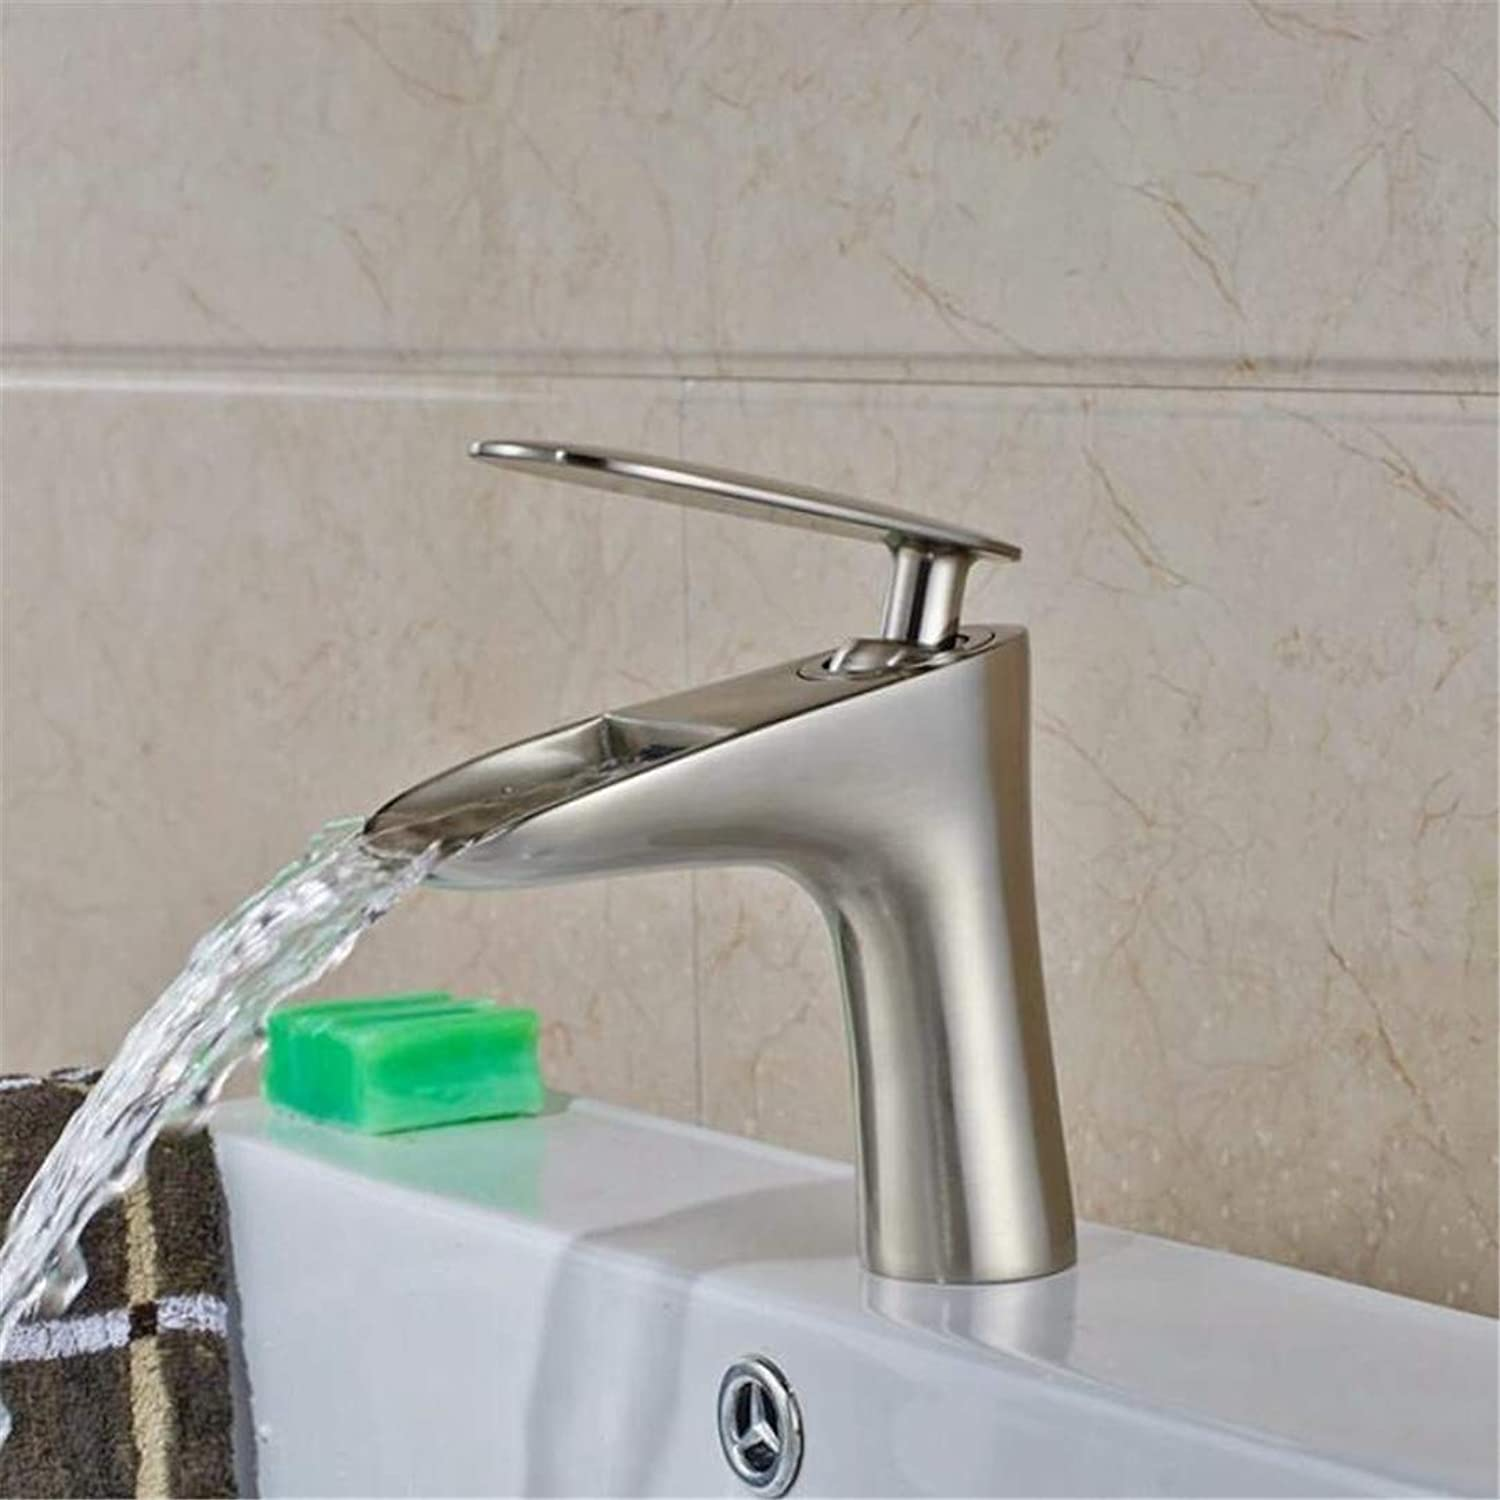 Faucet Washbasin Mixer Wholesale and Retail Deck Mounted Nickle Brushed Basin Faucet Mixer Tap Single Lever Swivel Spout